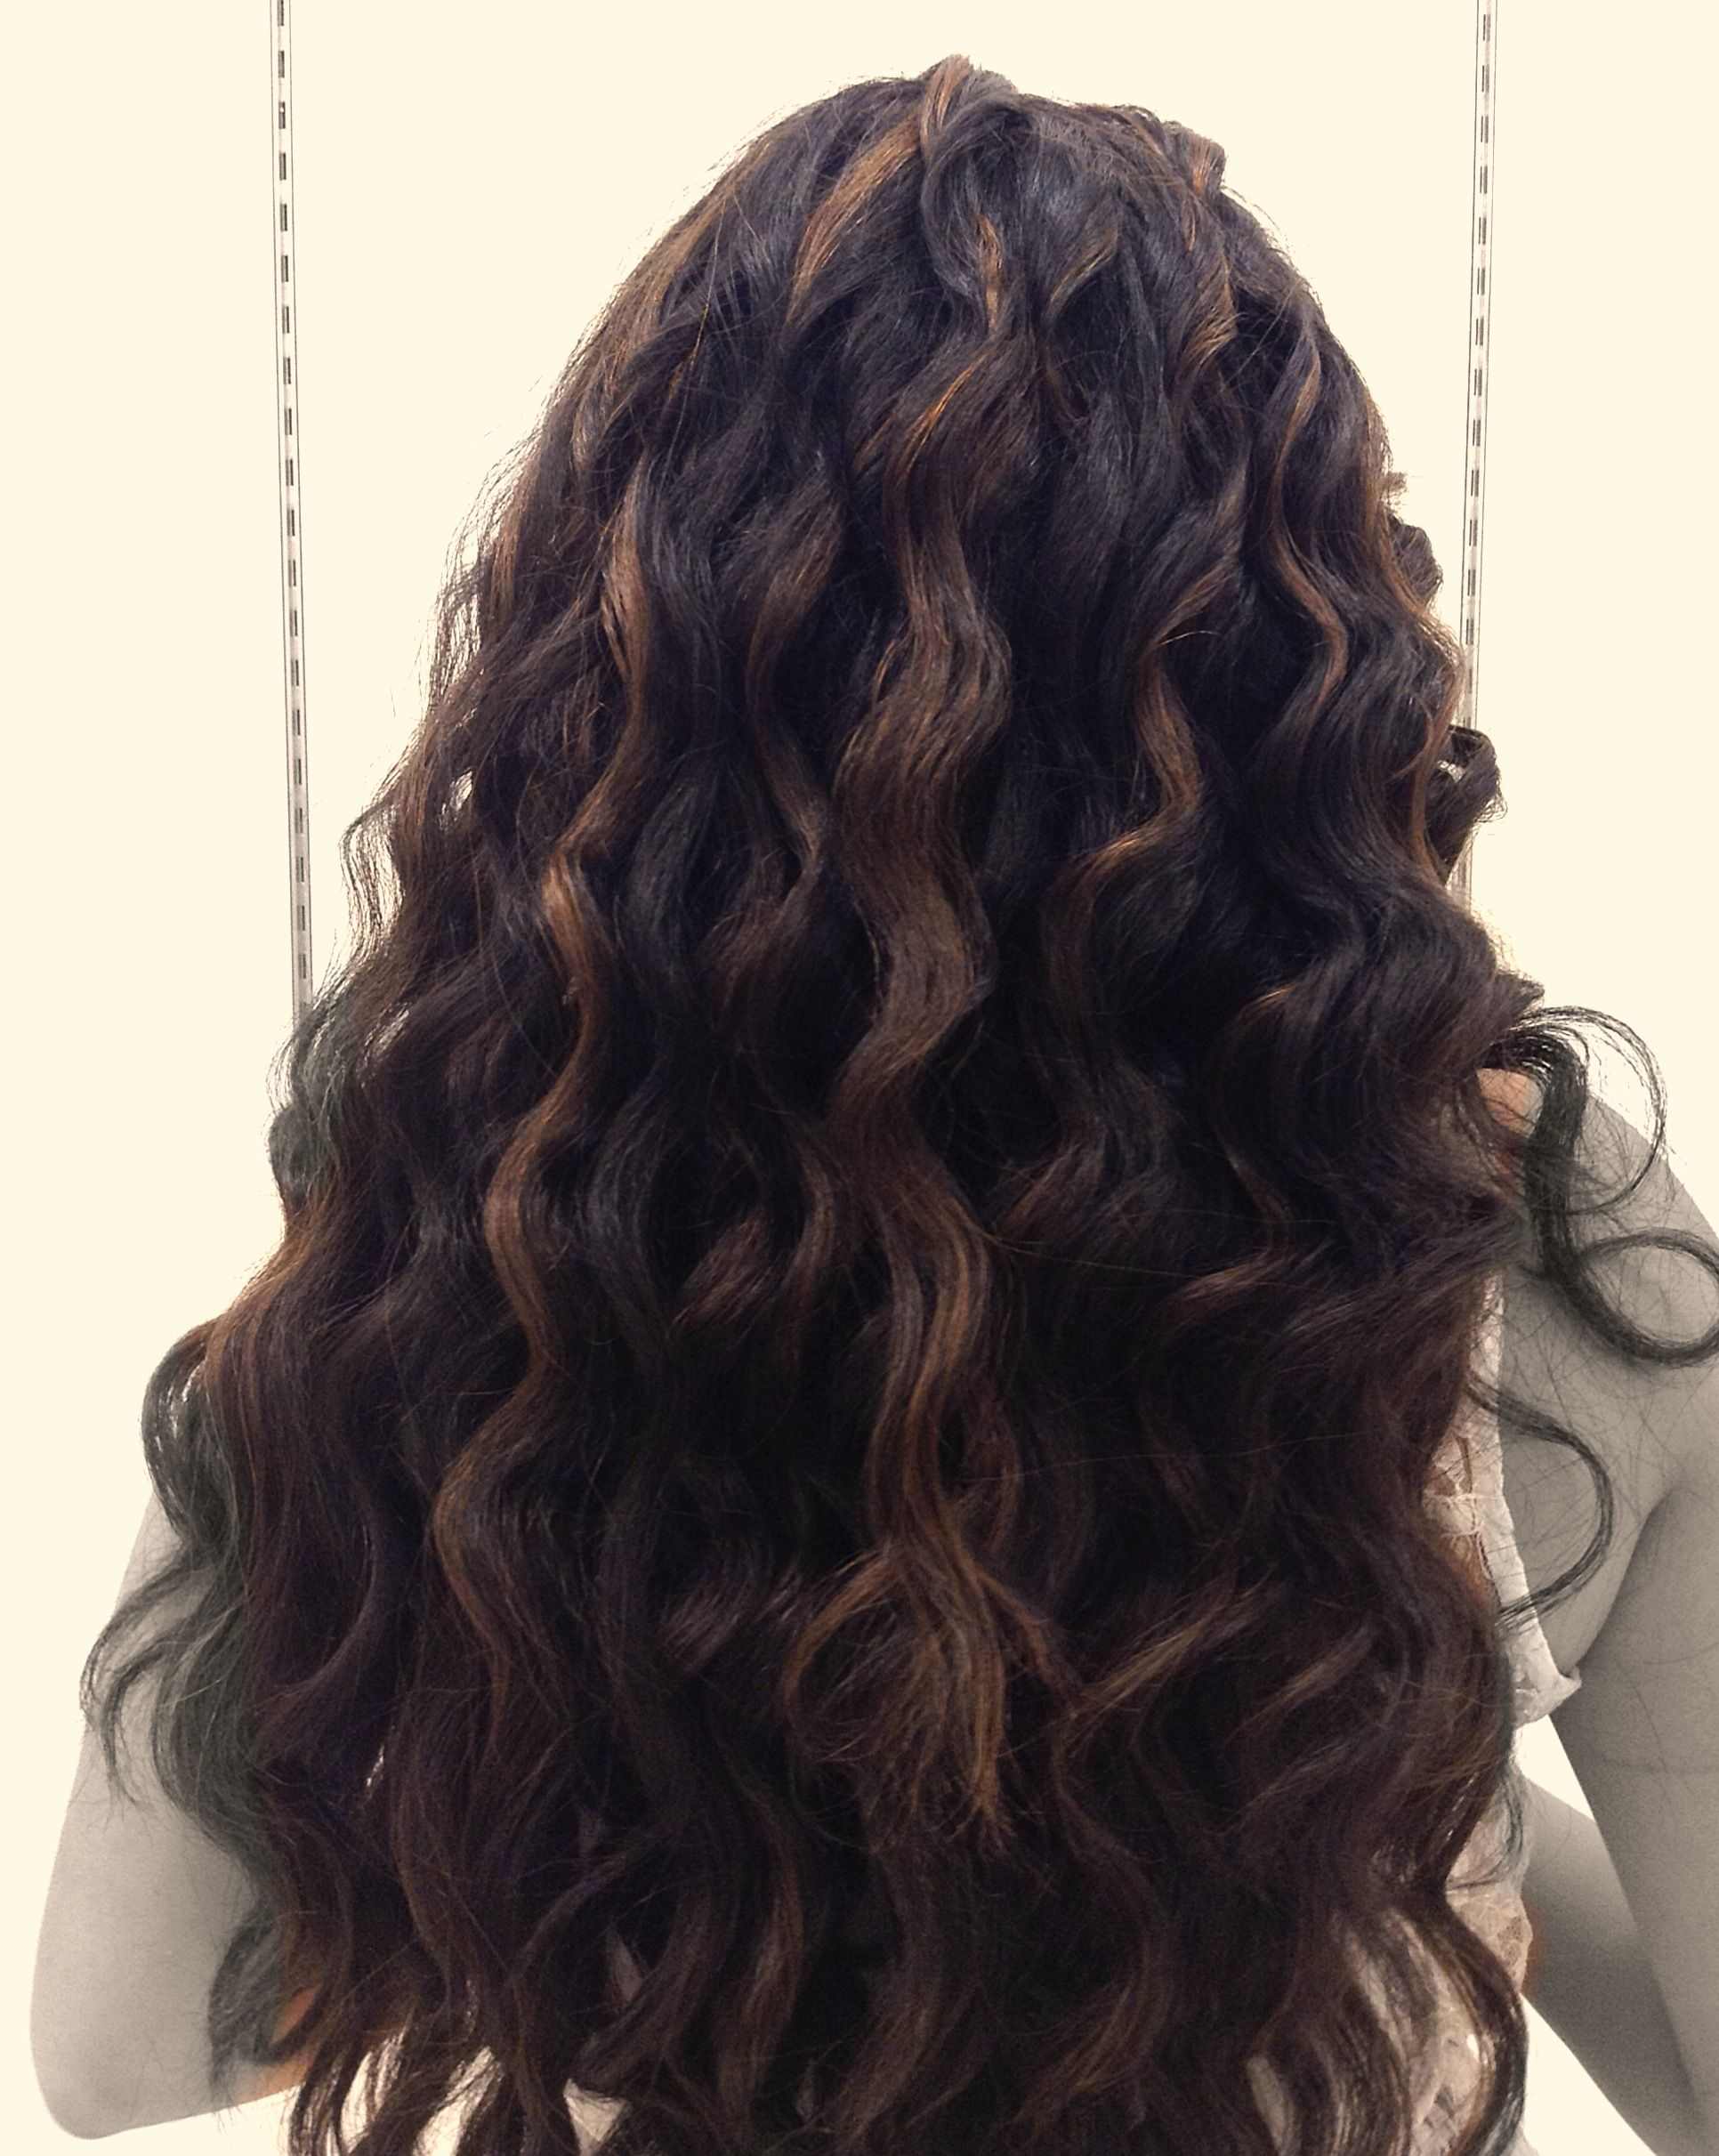 Pin By Seema Badrbigi On Just A Tangle Of Hair Highlights Curly Hair Hair Highlights Hair Pale Skin